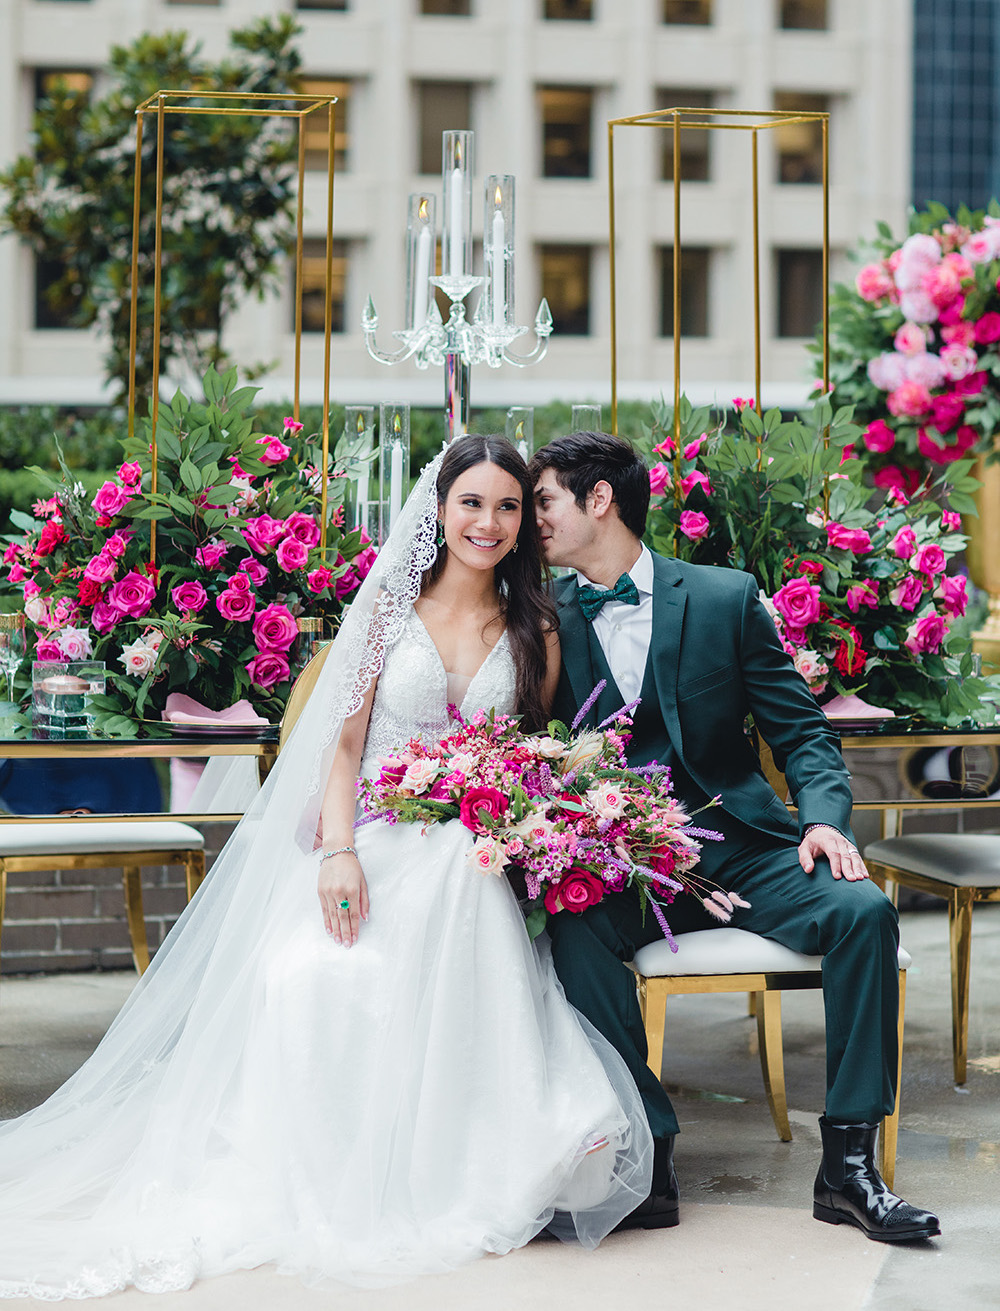 The groom in an emerald suit whispers sweet nothings to his bride while she holds her vibrant bridal bouquet.